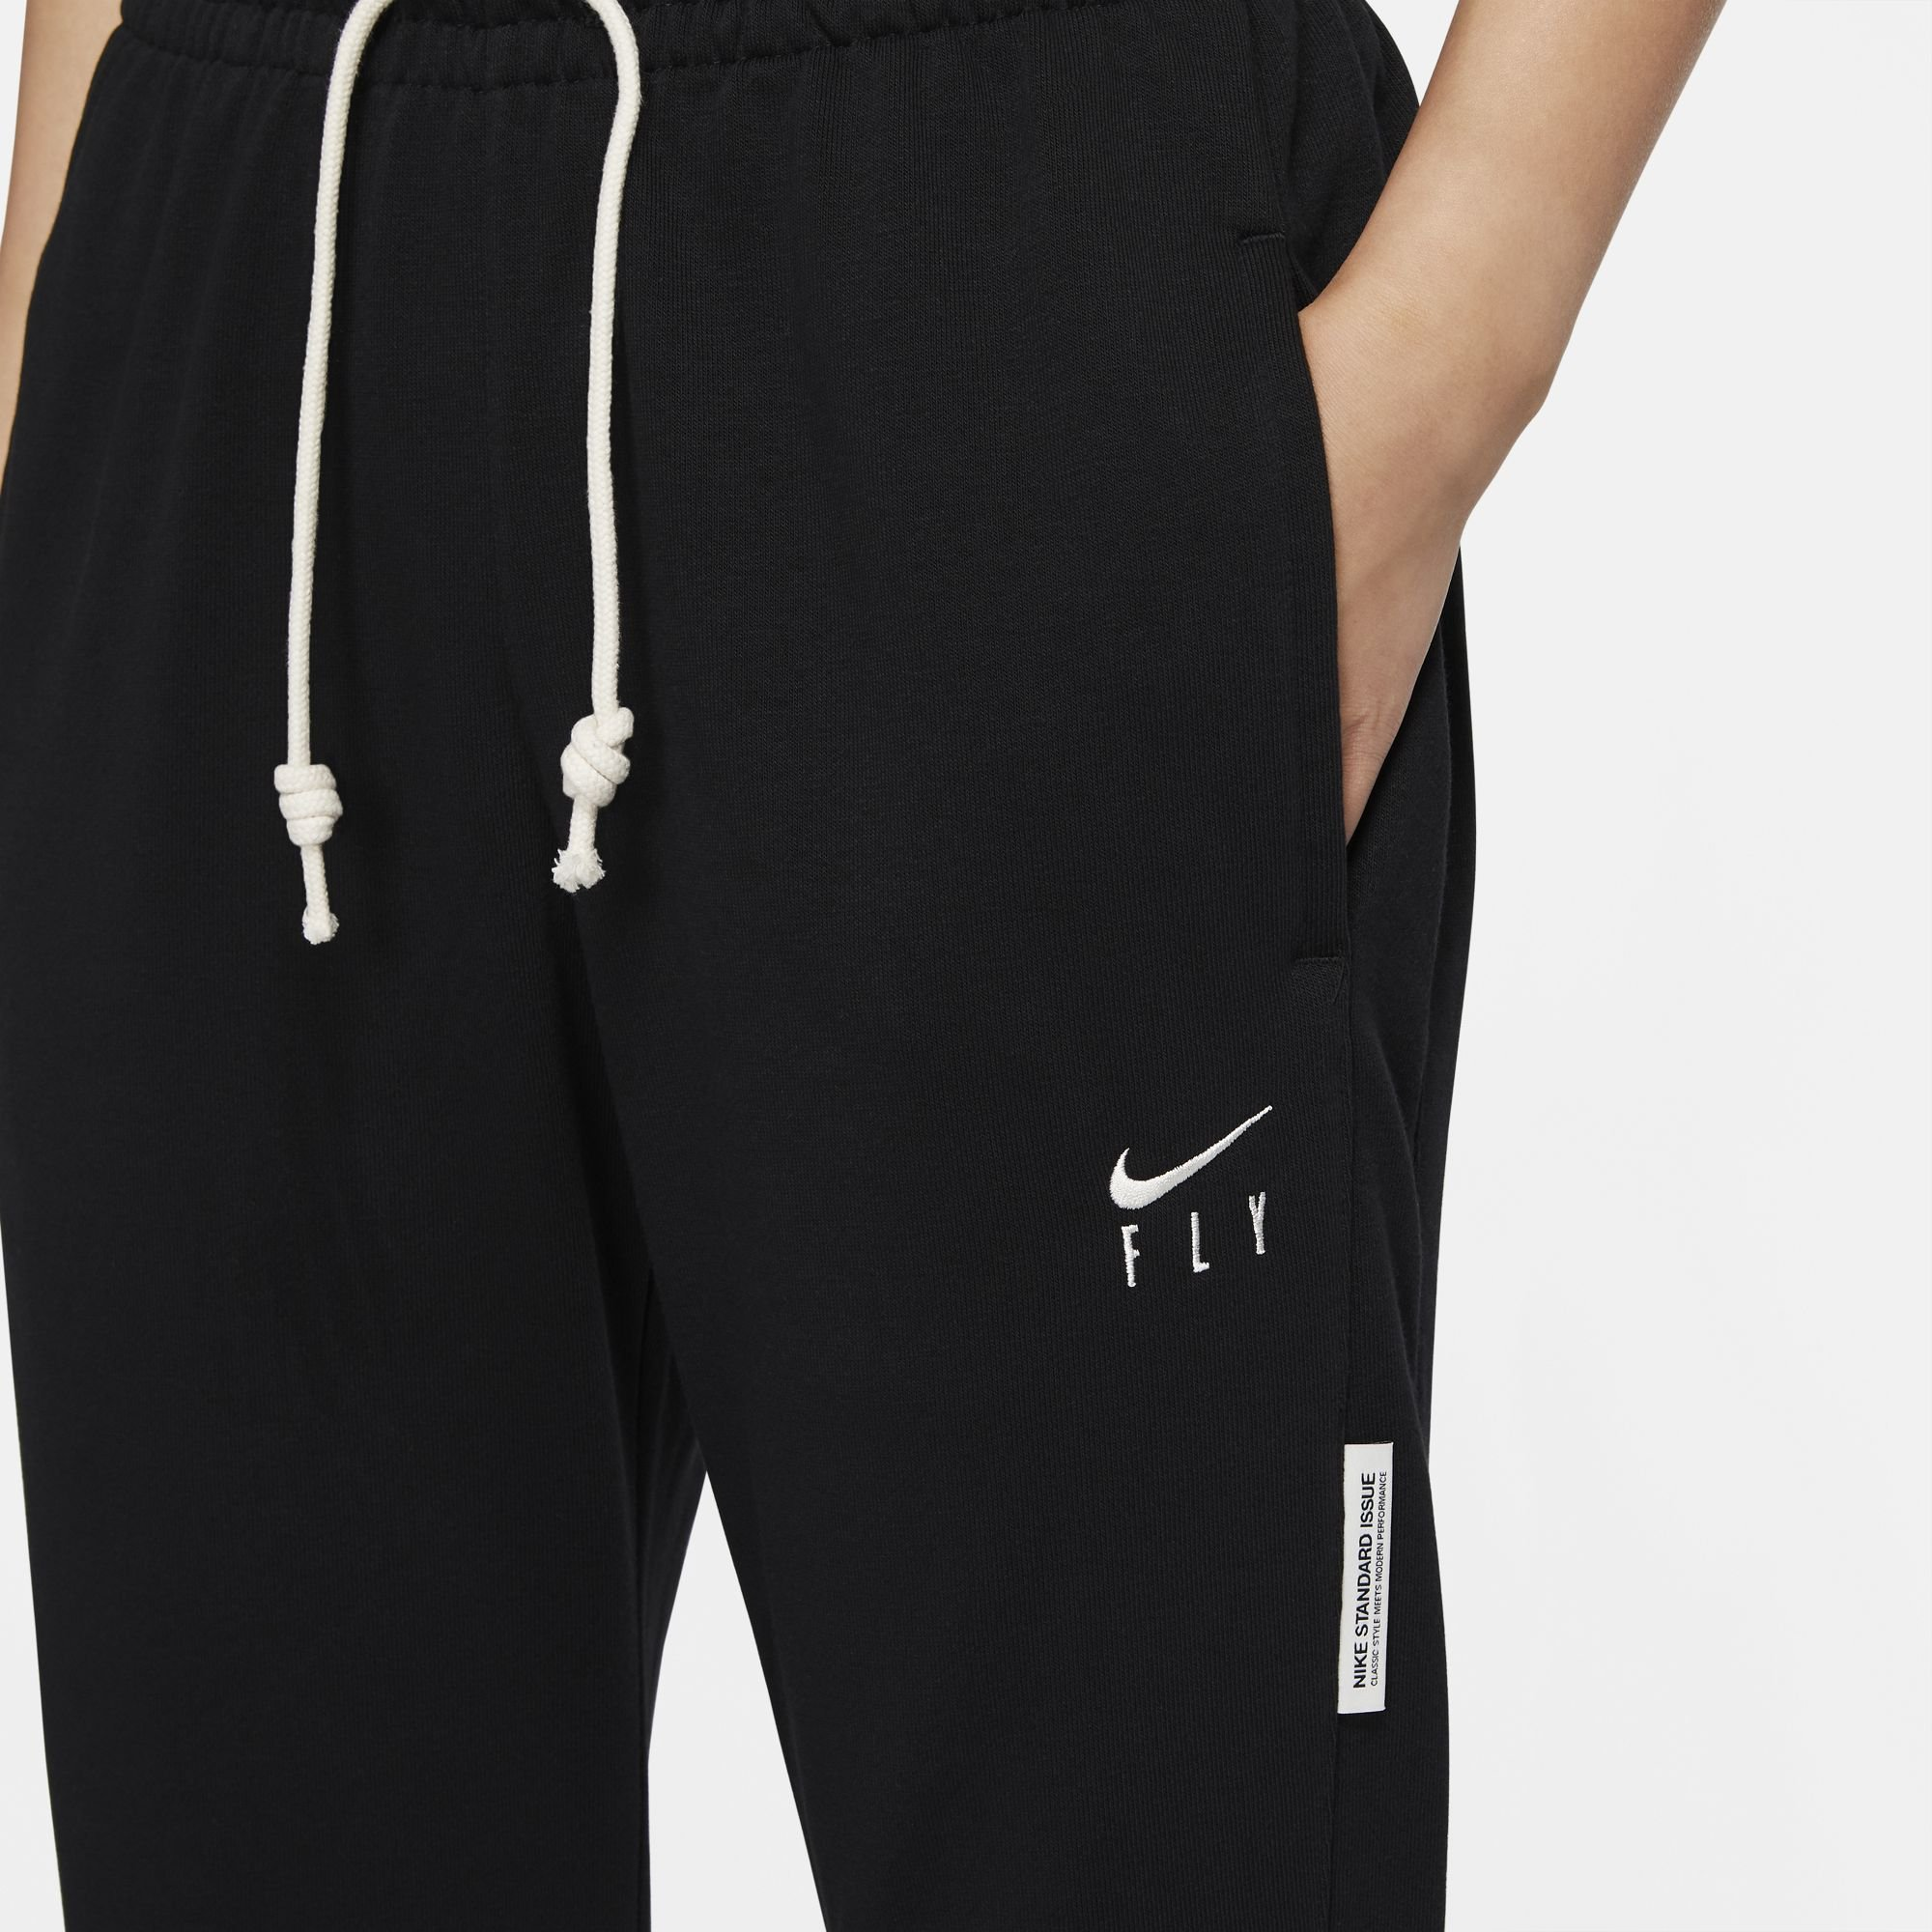 """nike dri-fit pant black white """"fly pack for her"""""""